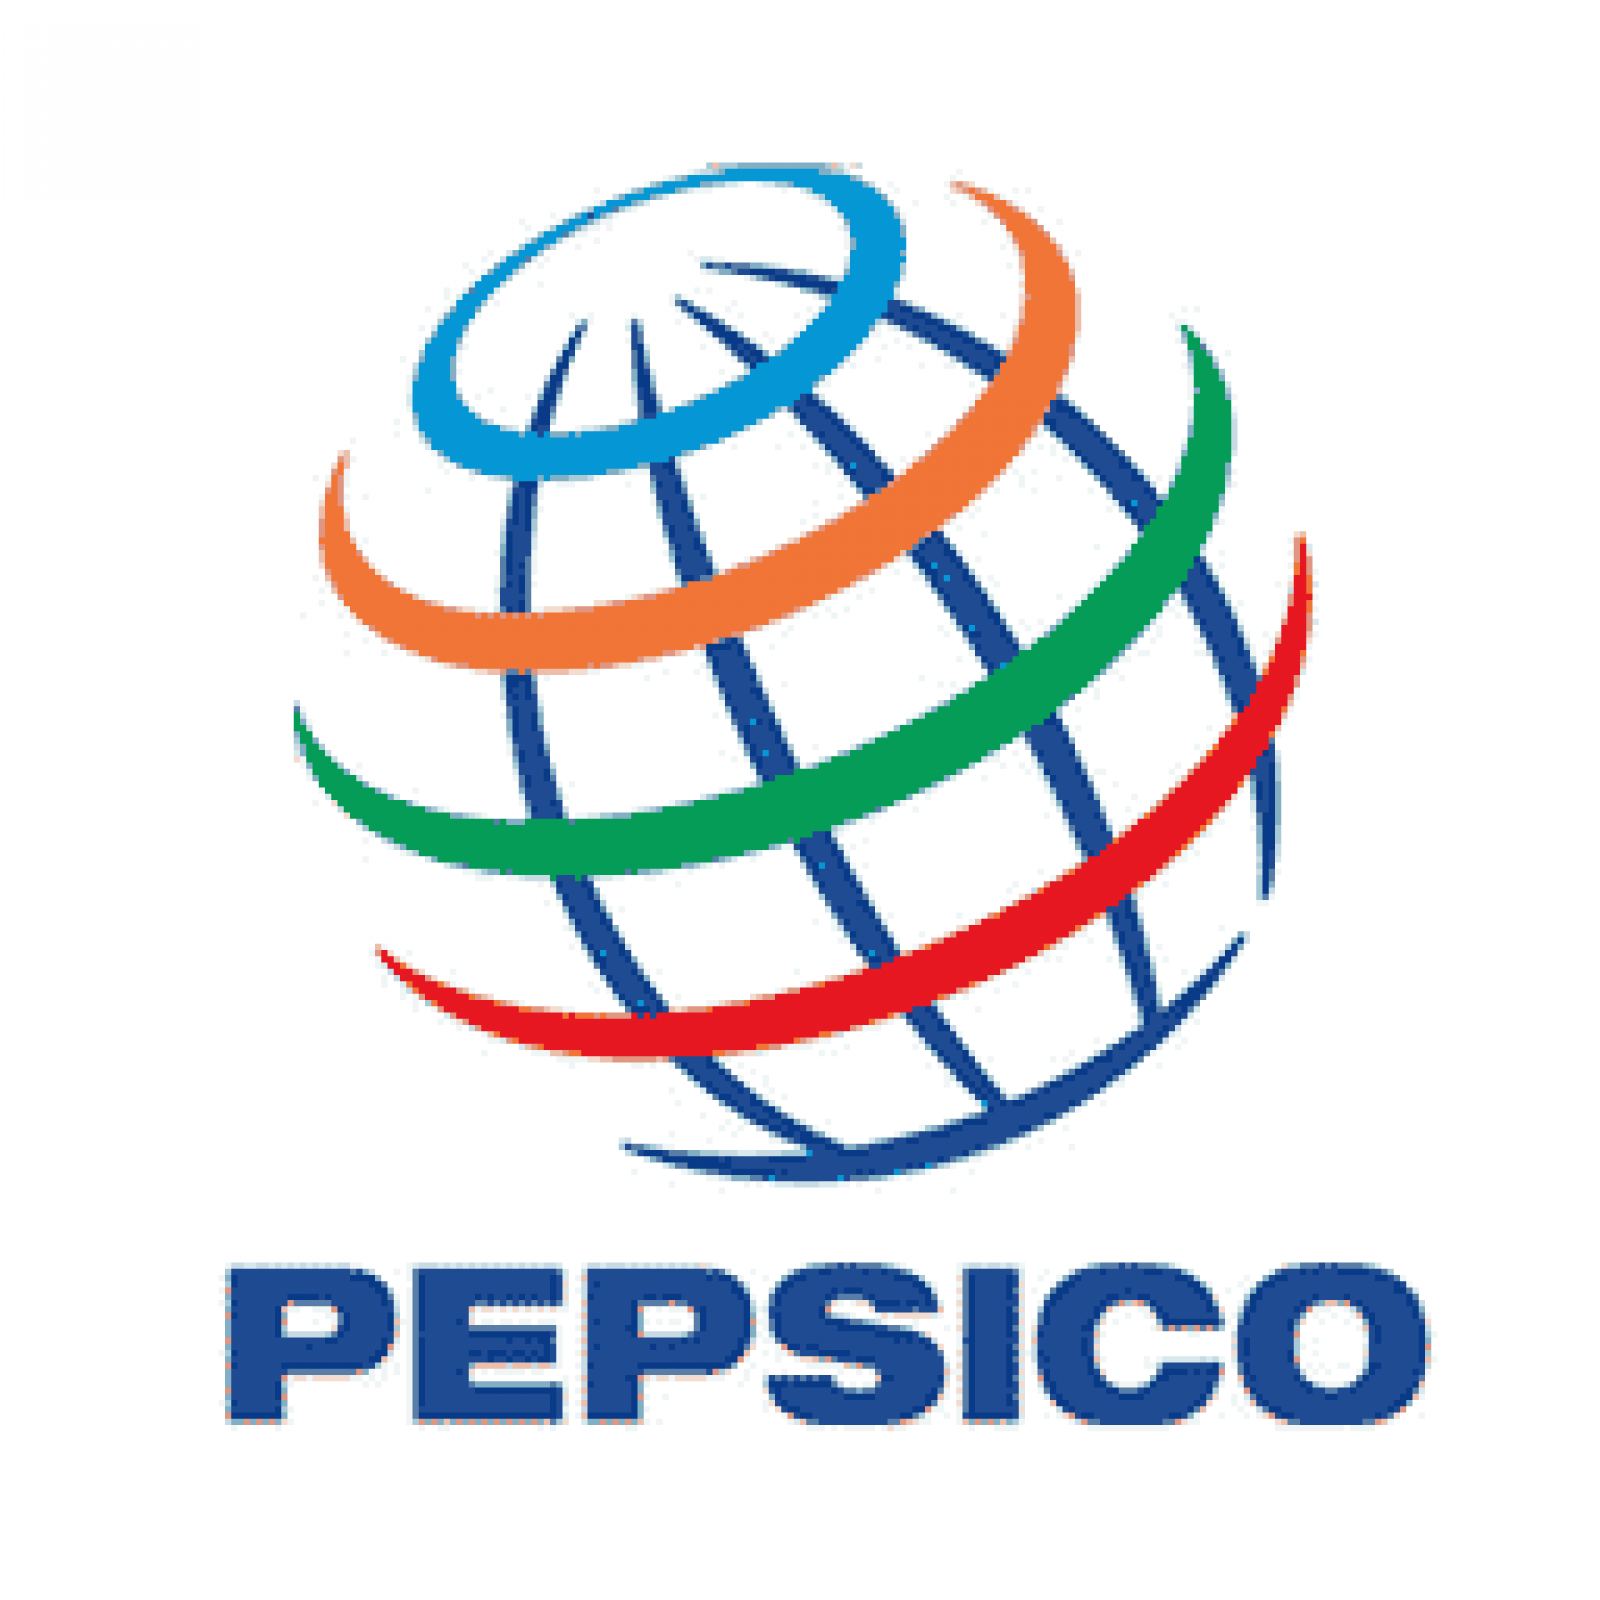 pepsico symbol logo brands for free hd 3d